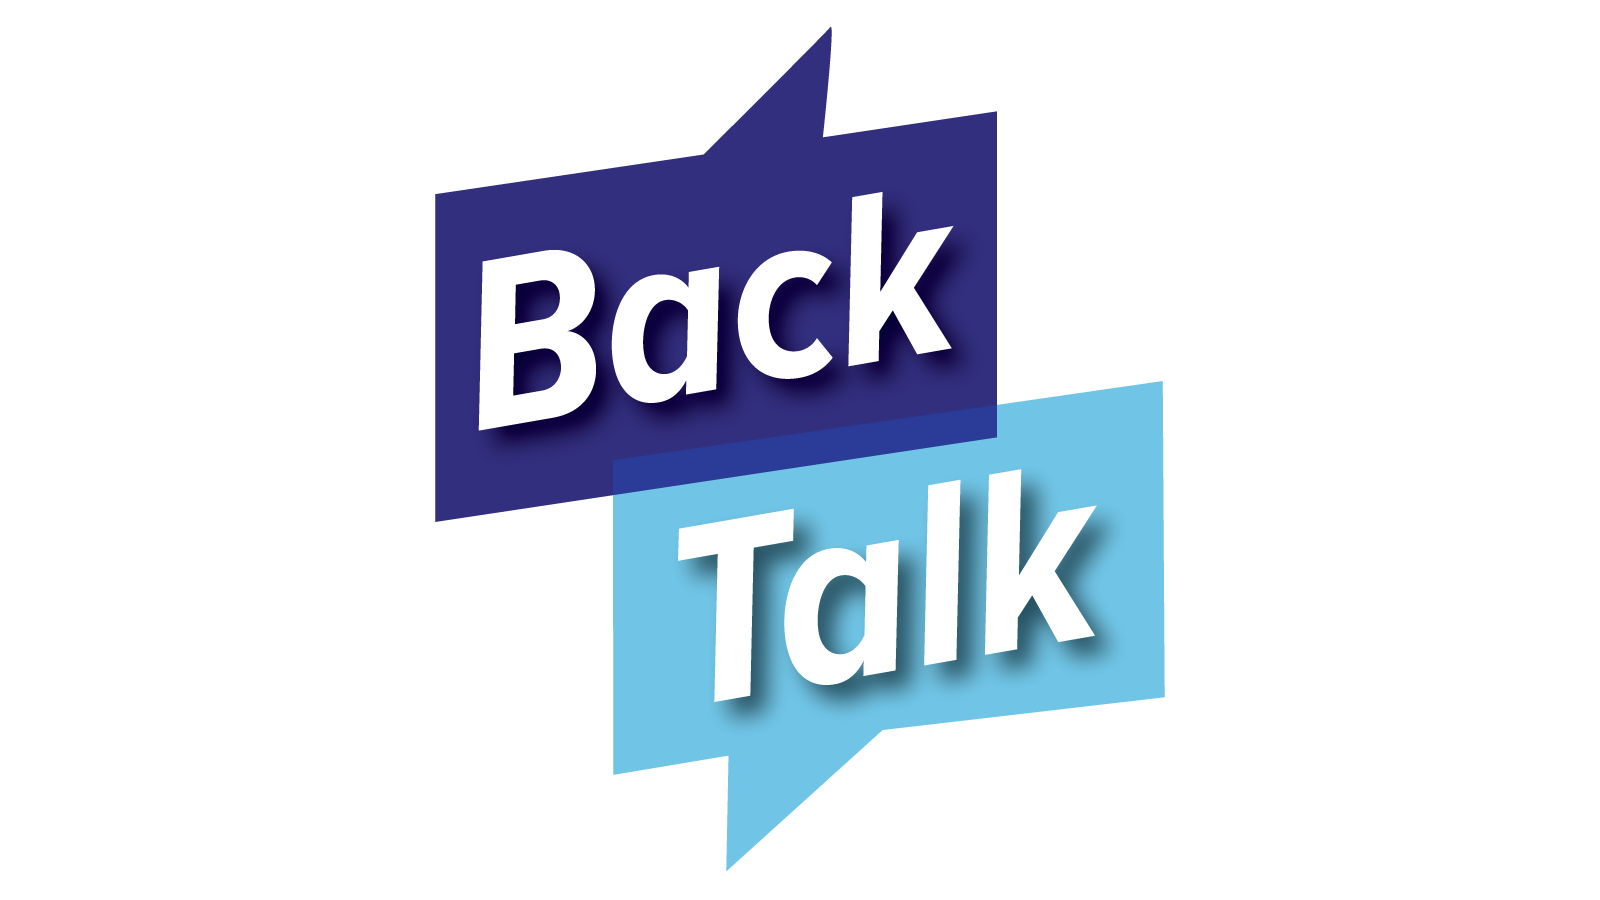 BackTalk Splash Image